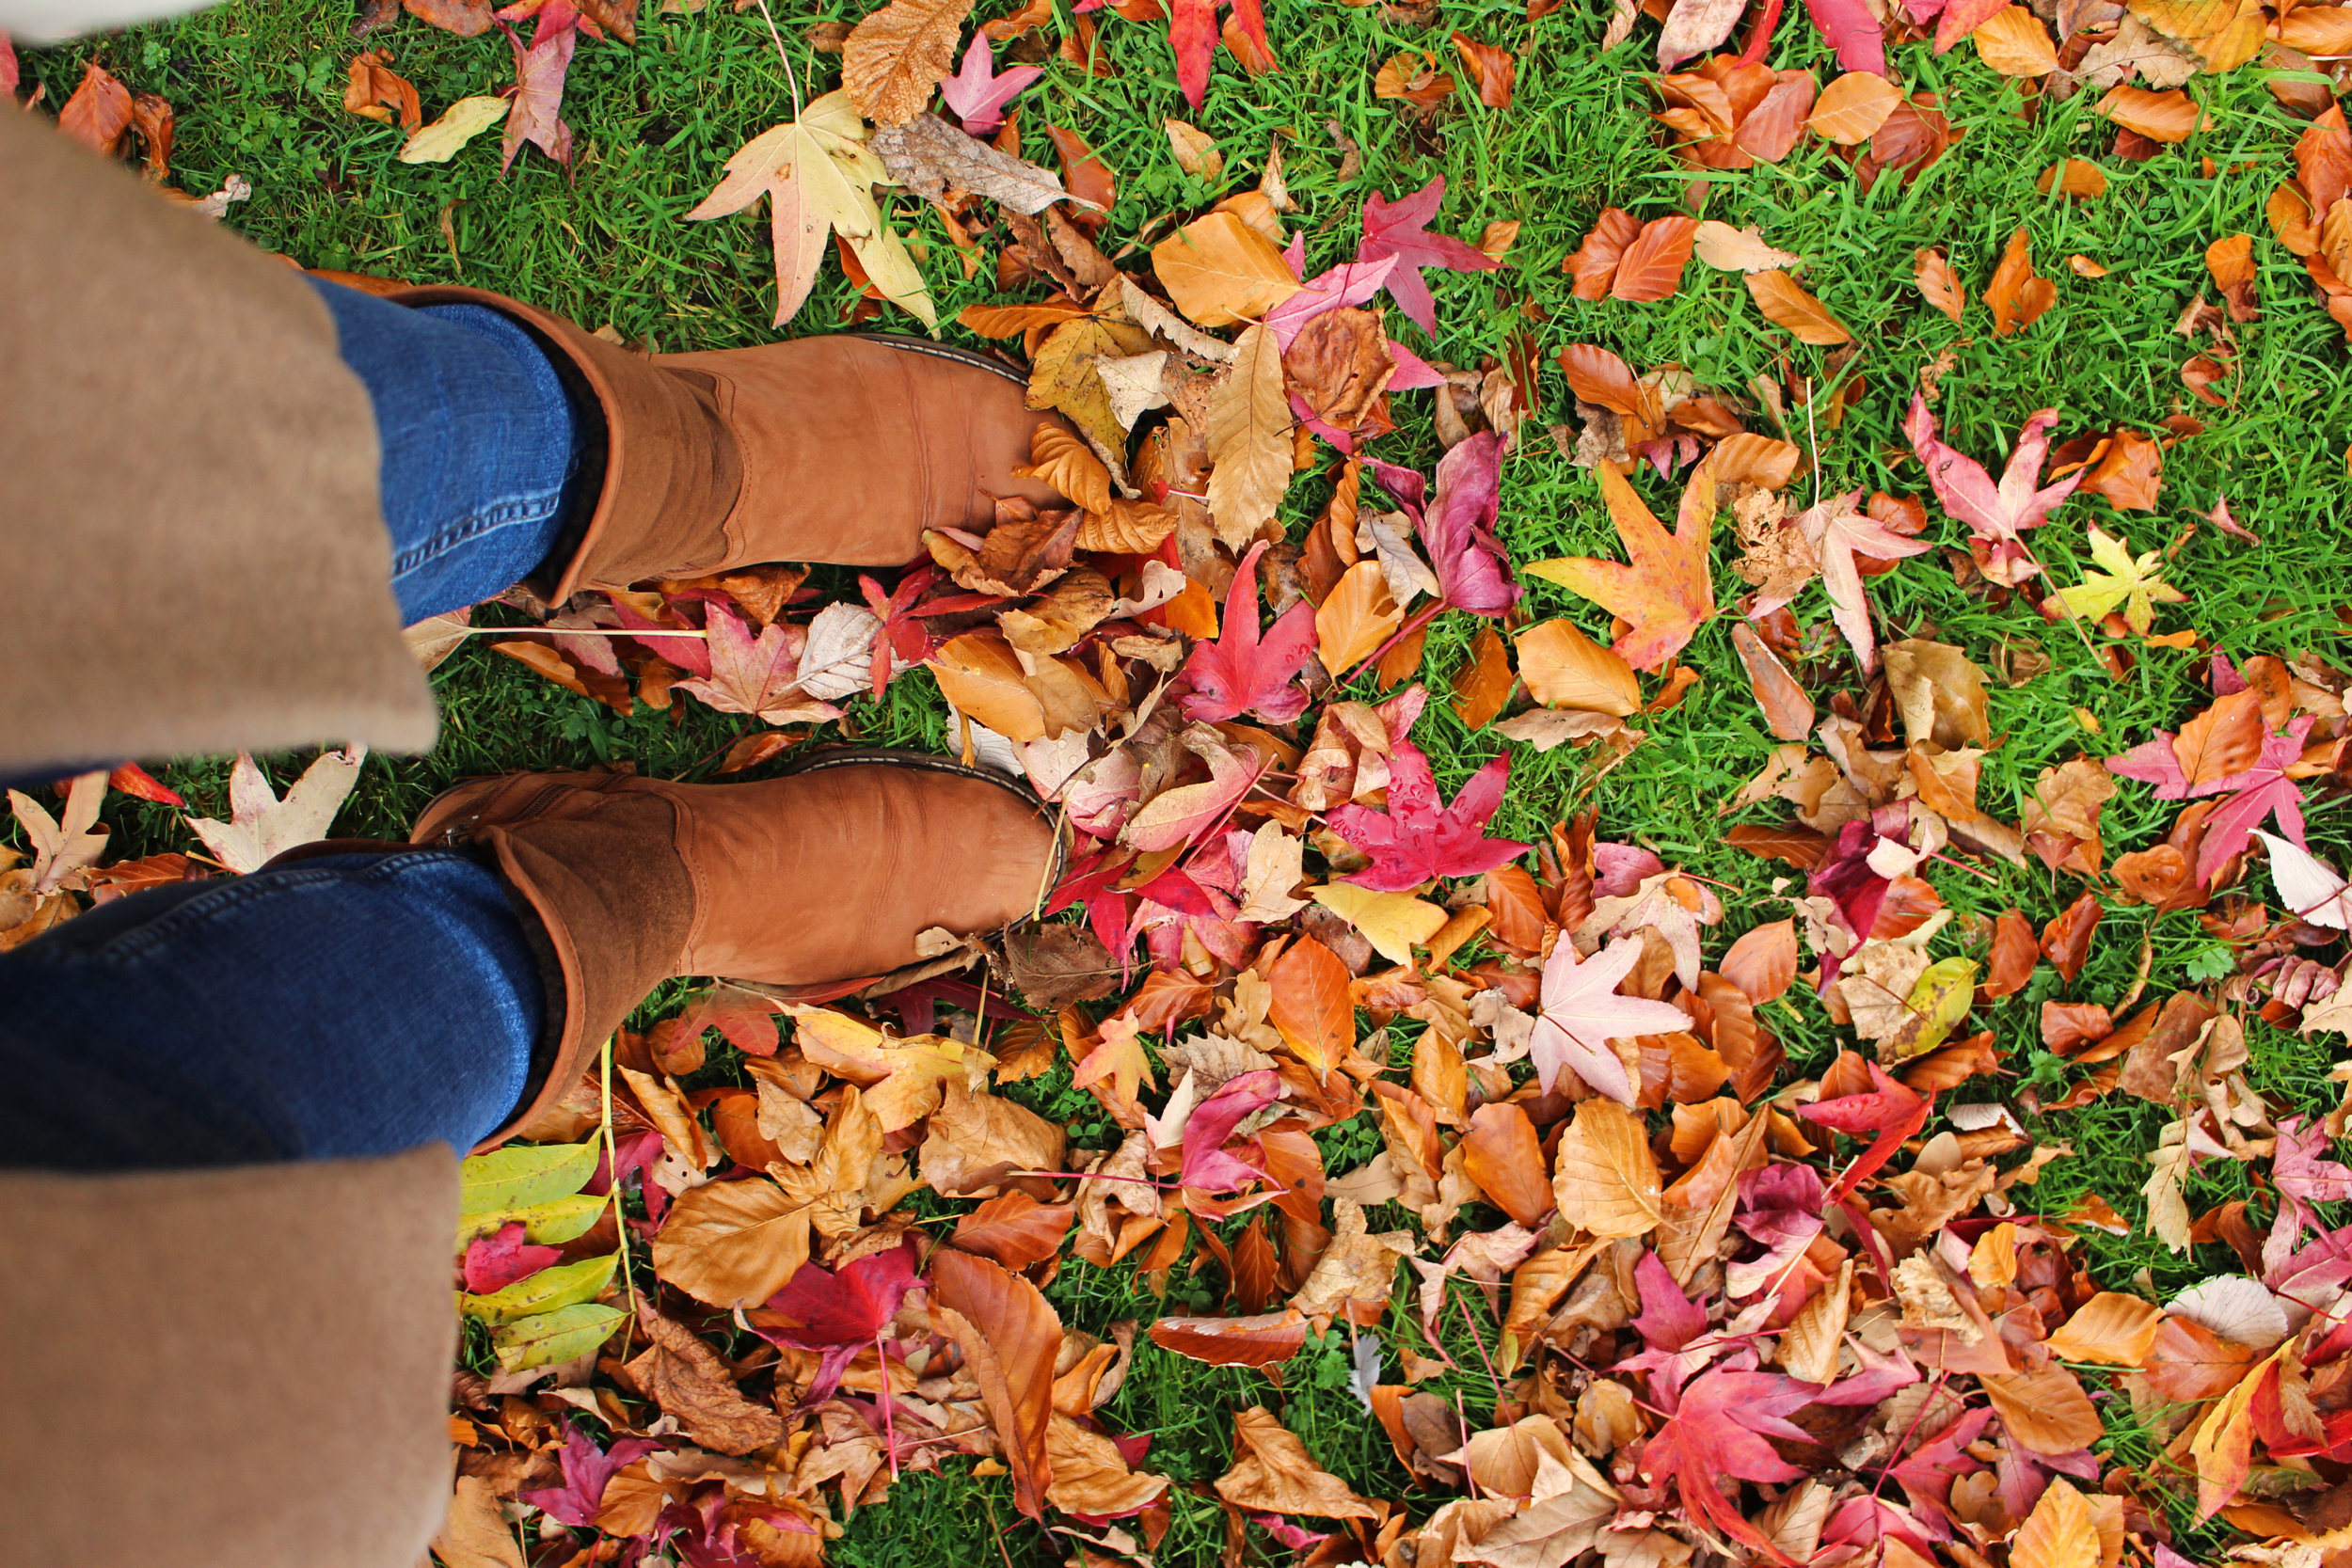 Autumnal fun: stepping into the crunchy leaves covering the lawns adjacent to the main gate.